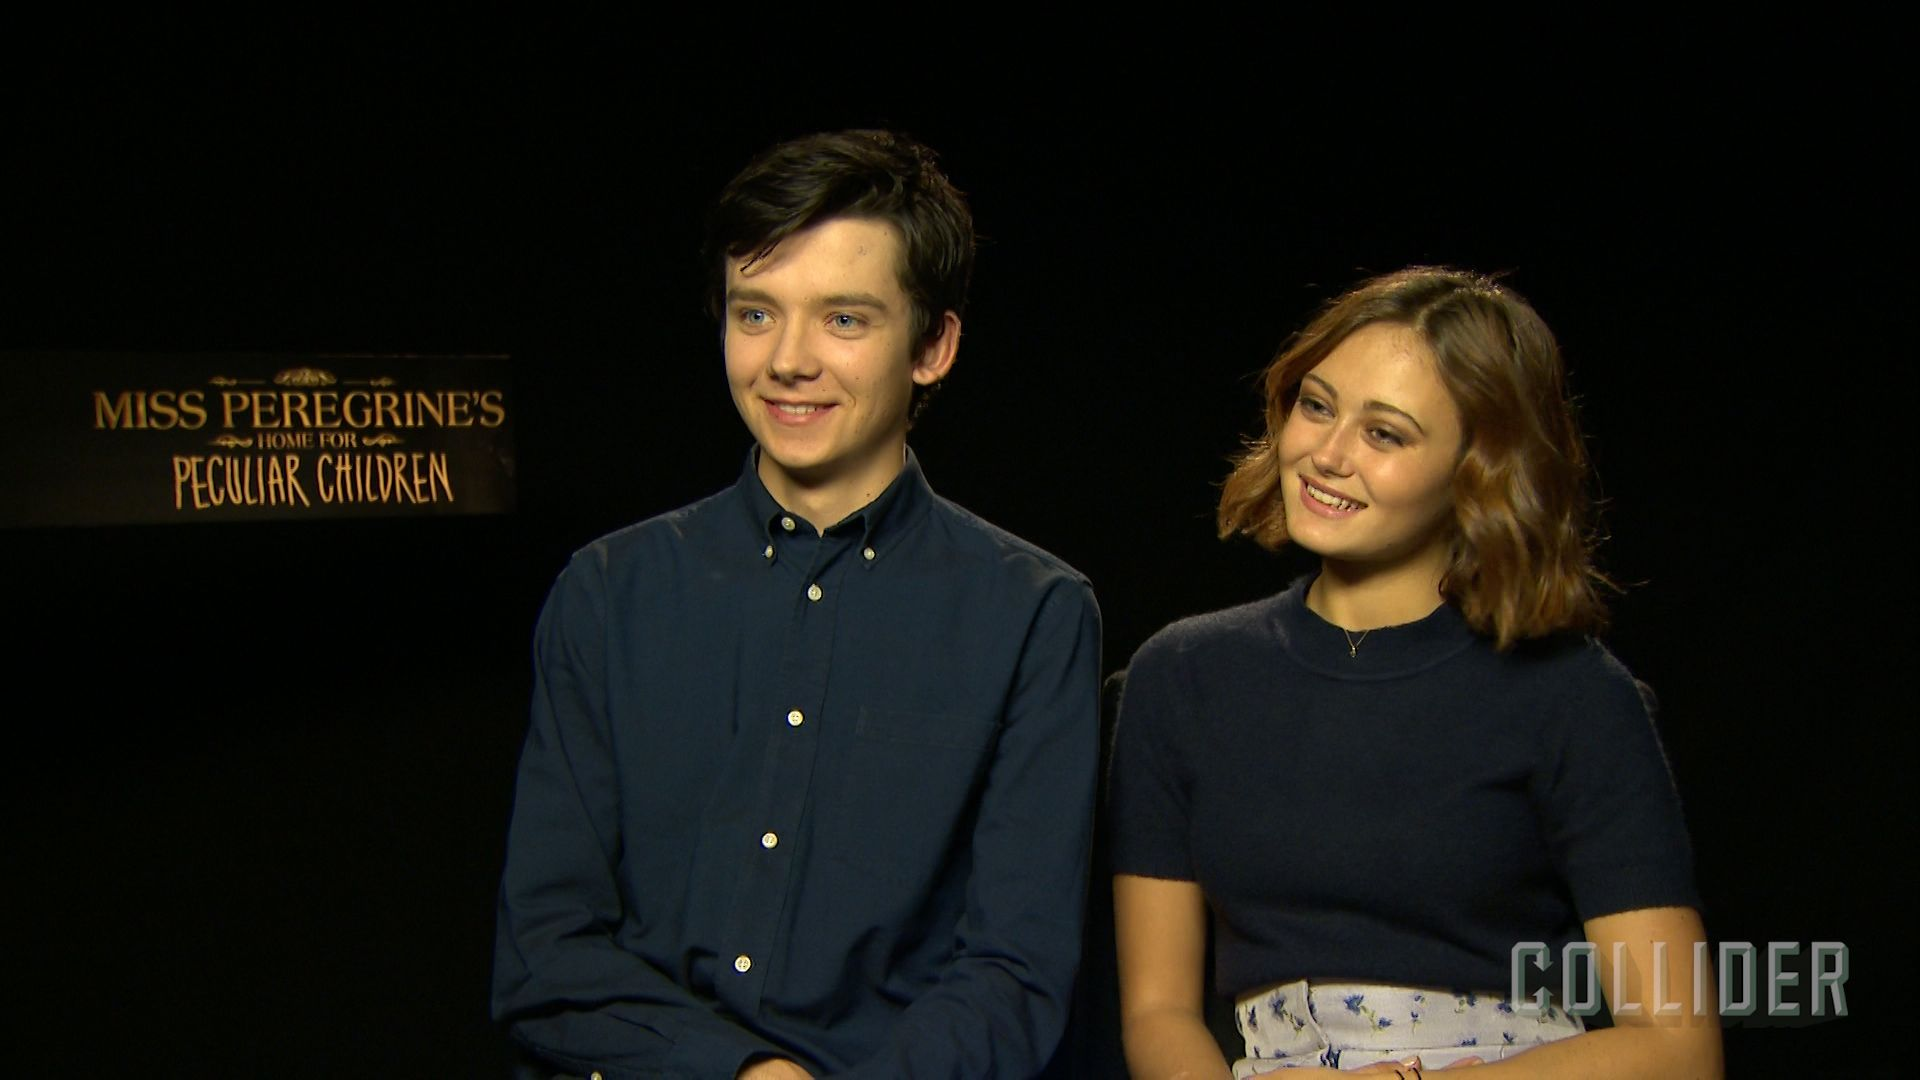 Asa Butterfield Ella Purnell On Miss Peregrine S Home For